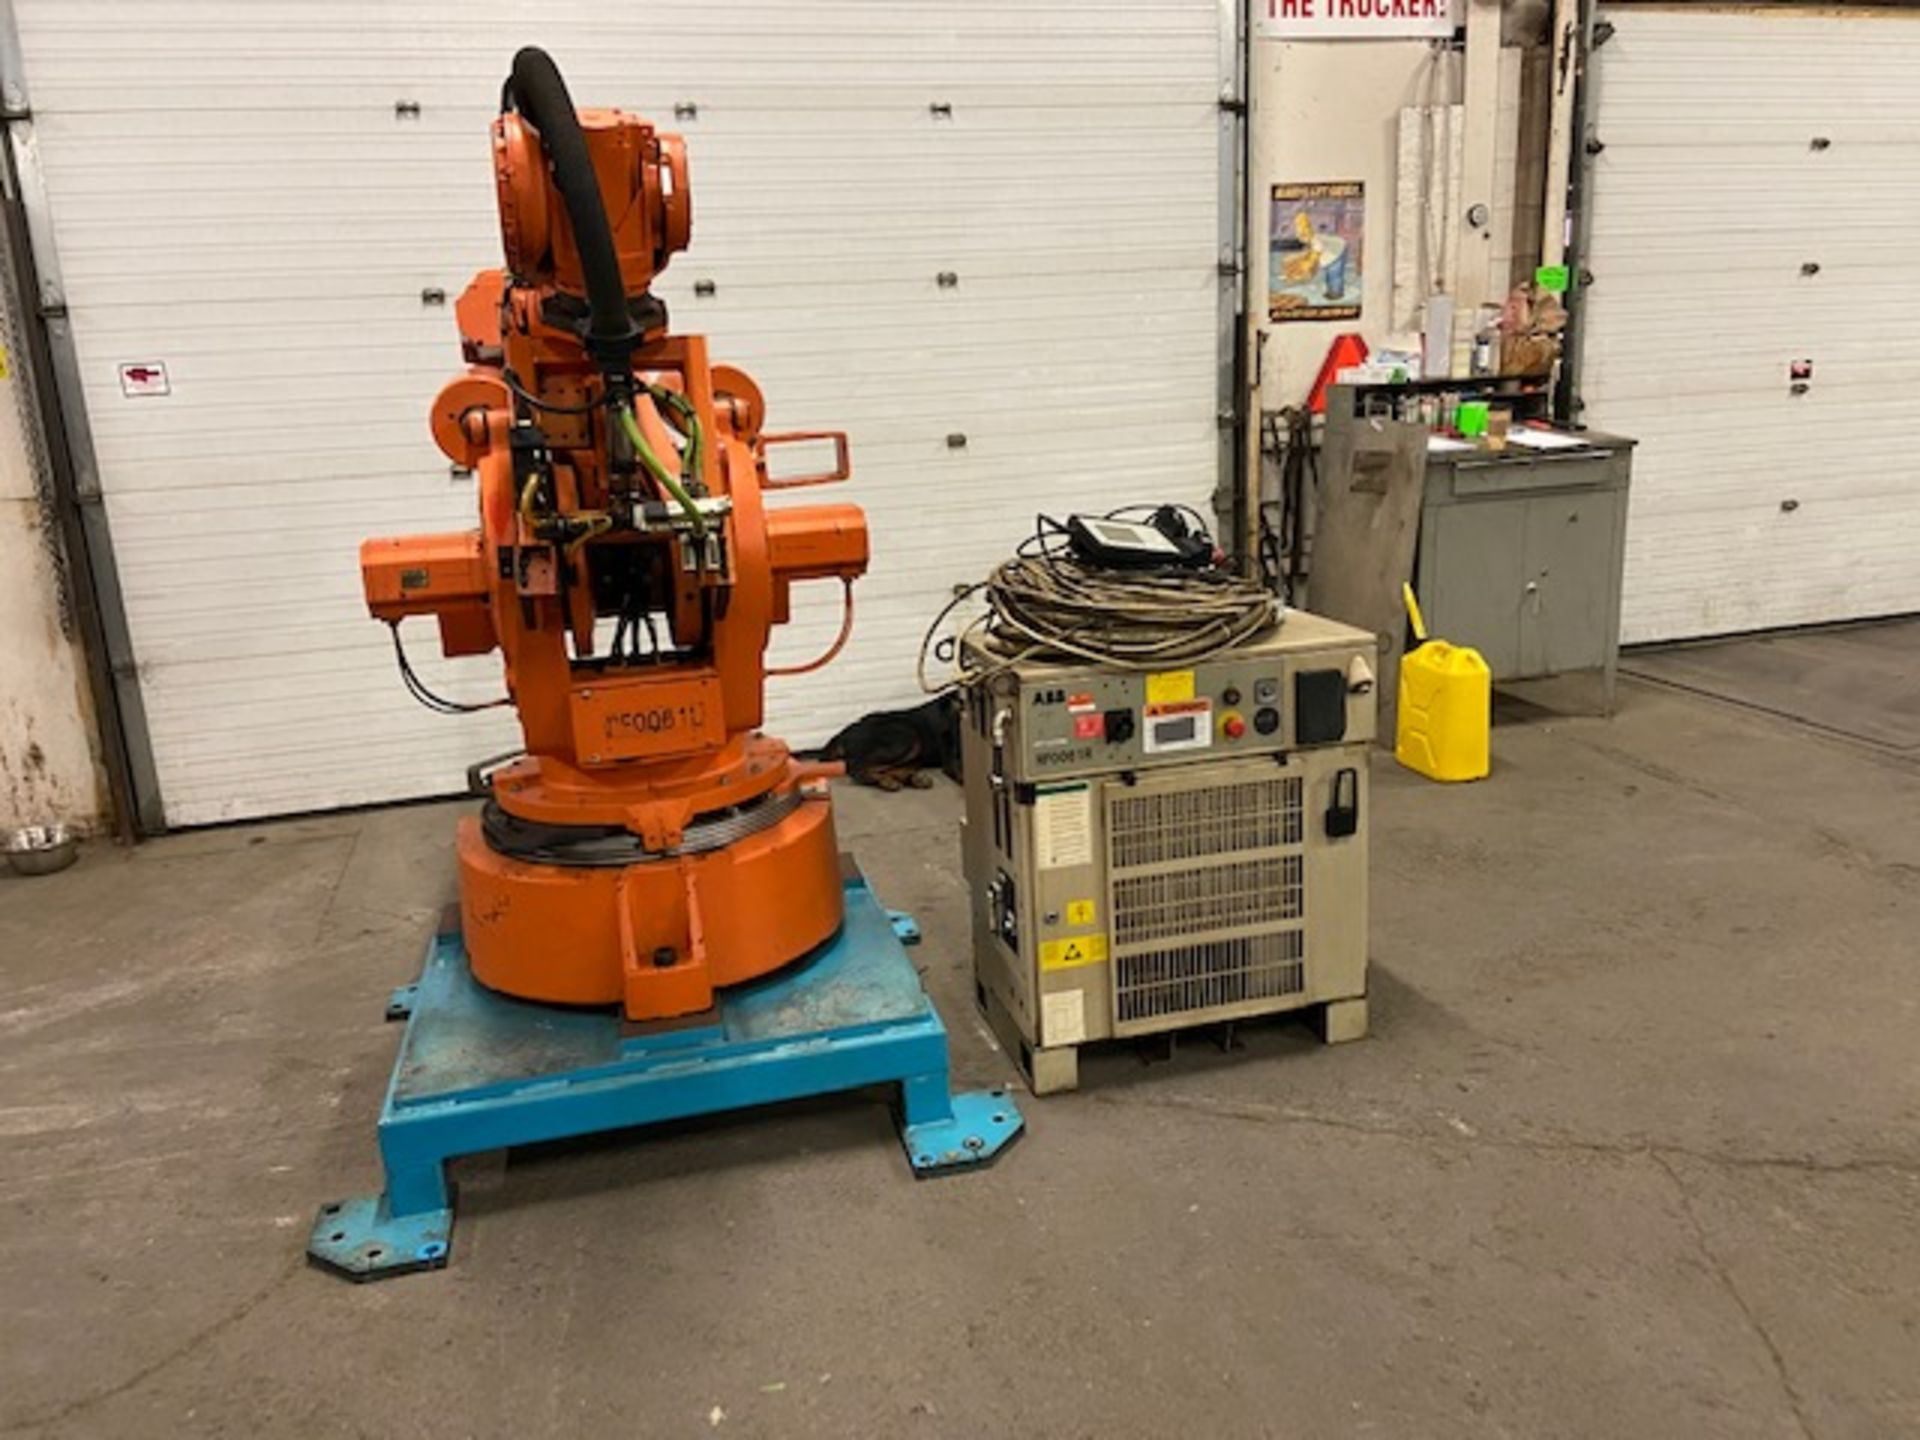 2008 ABB Robot IRB 6400 Handling Robot with ABB Controller & Teach Pendant and Cables complete - Image 2 of 4